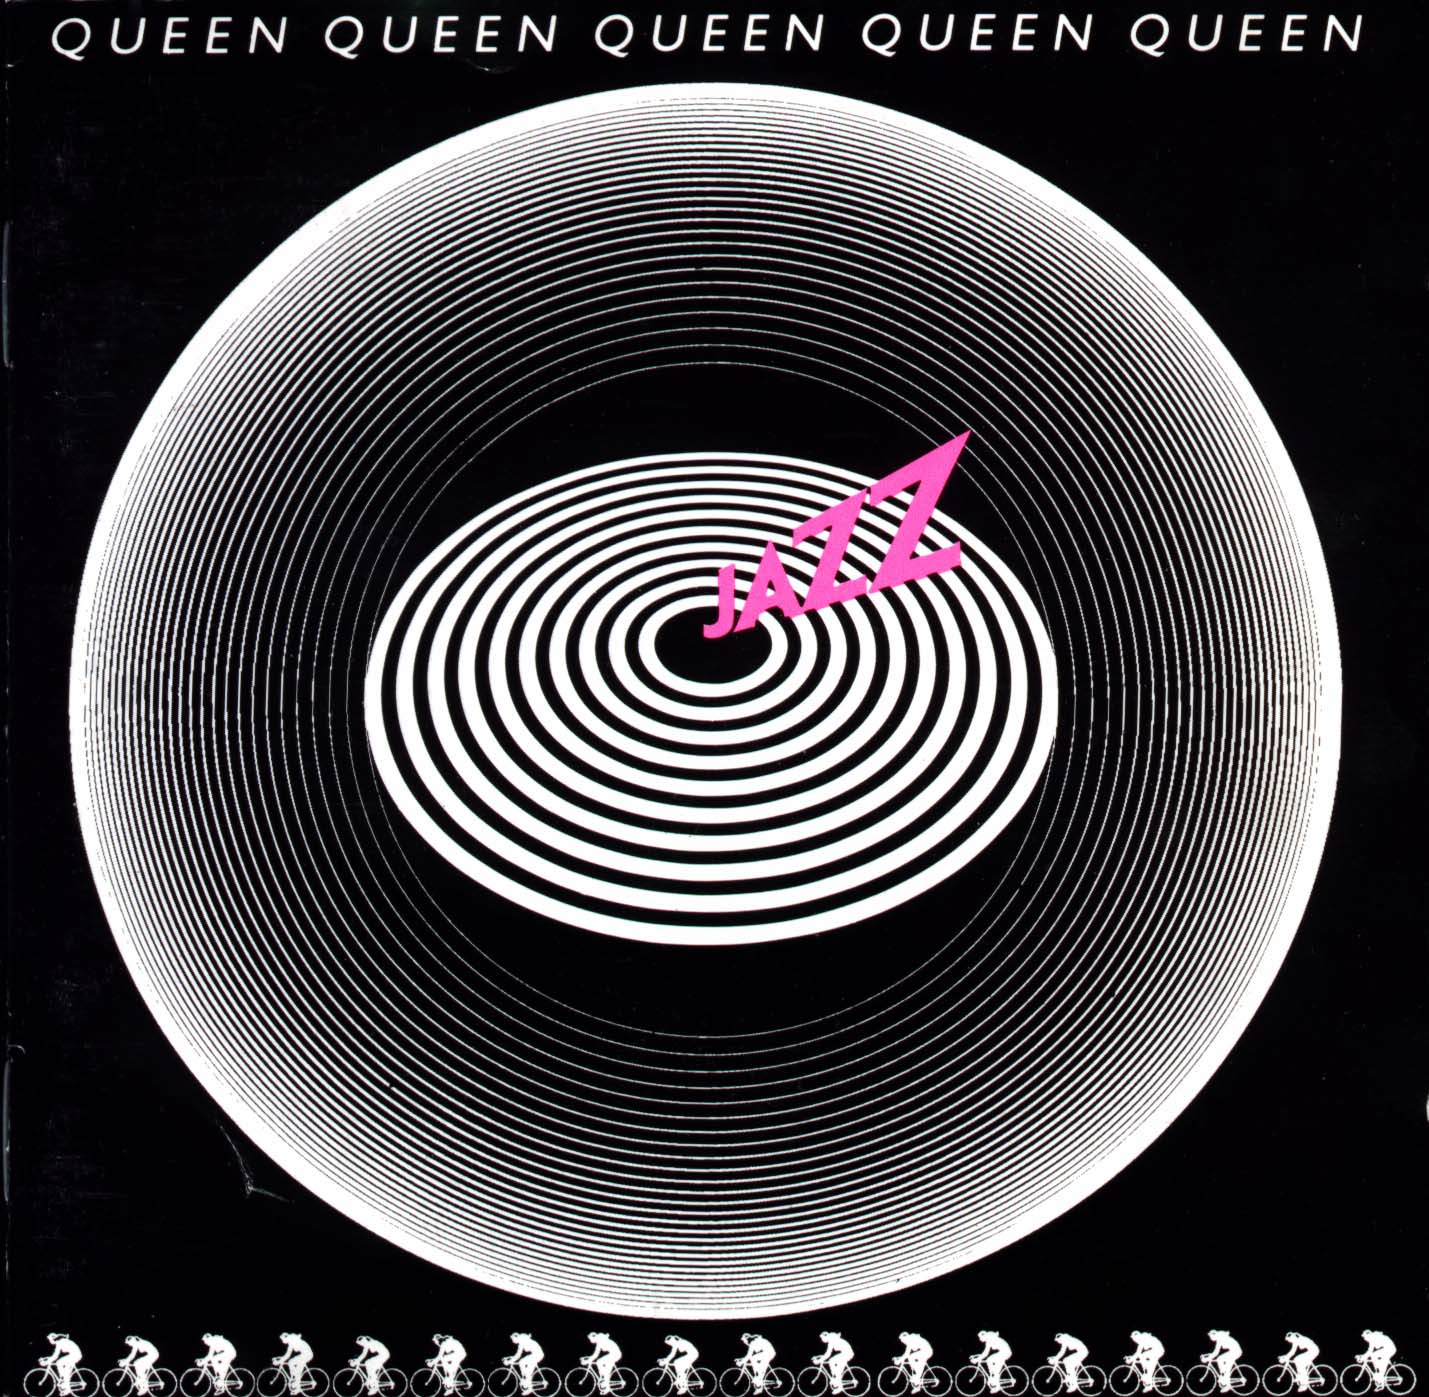 Discografia Completa Queen Descargar Gratis Download